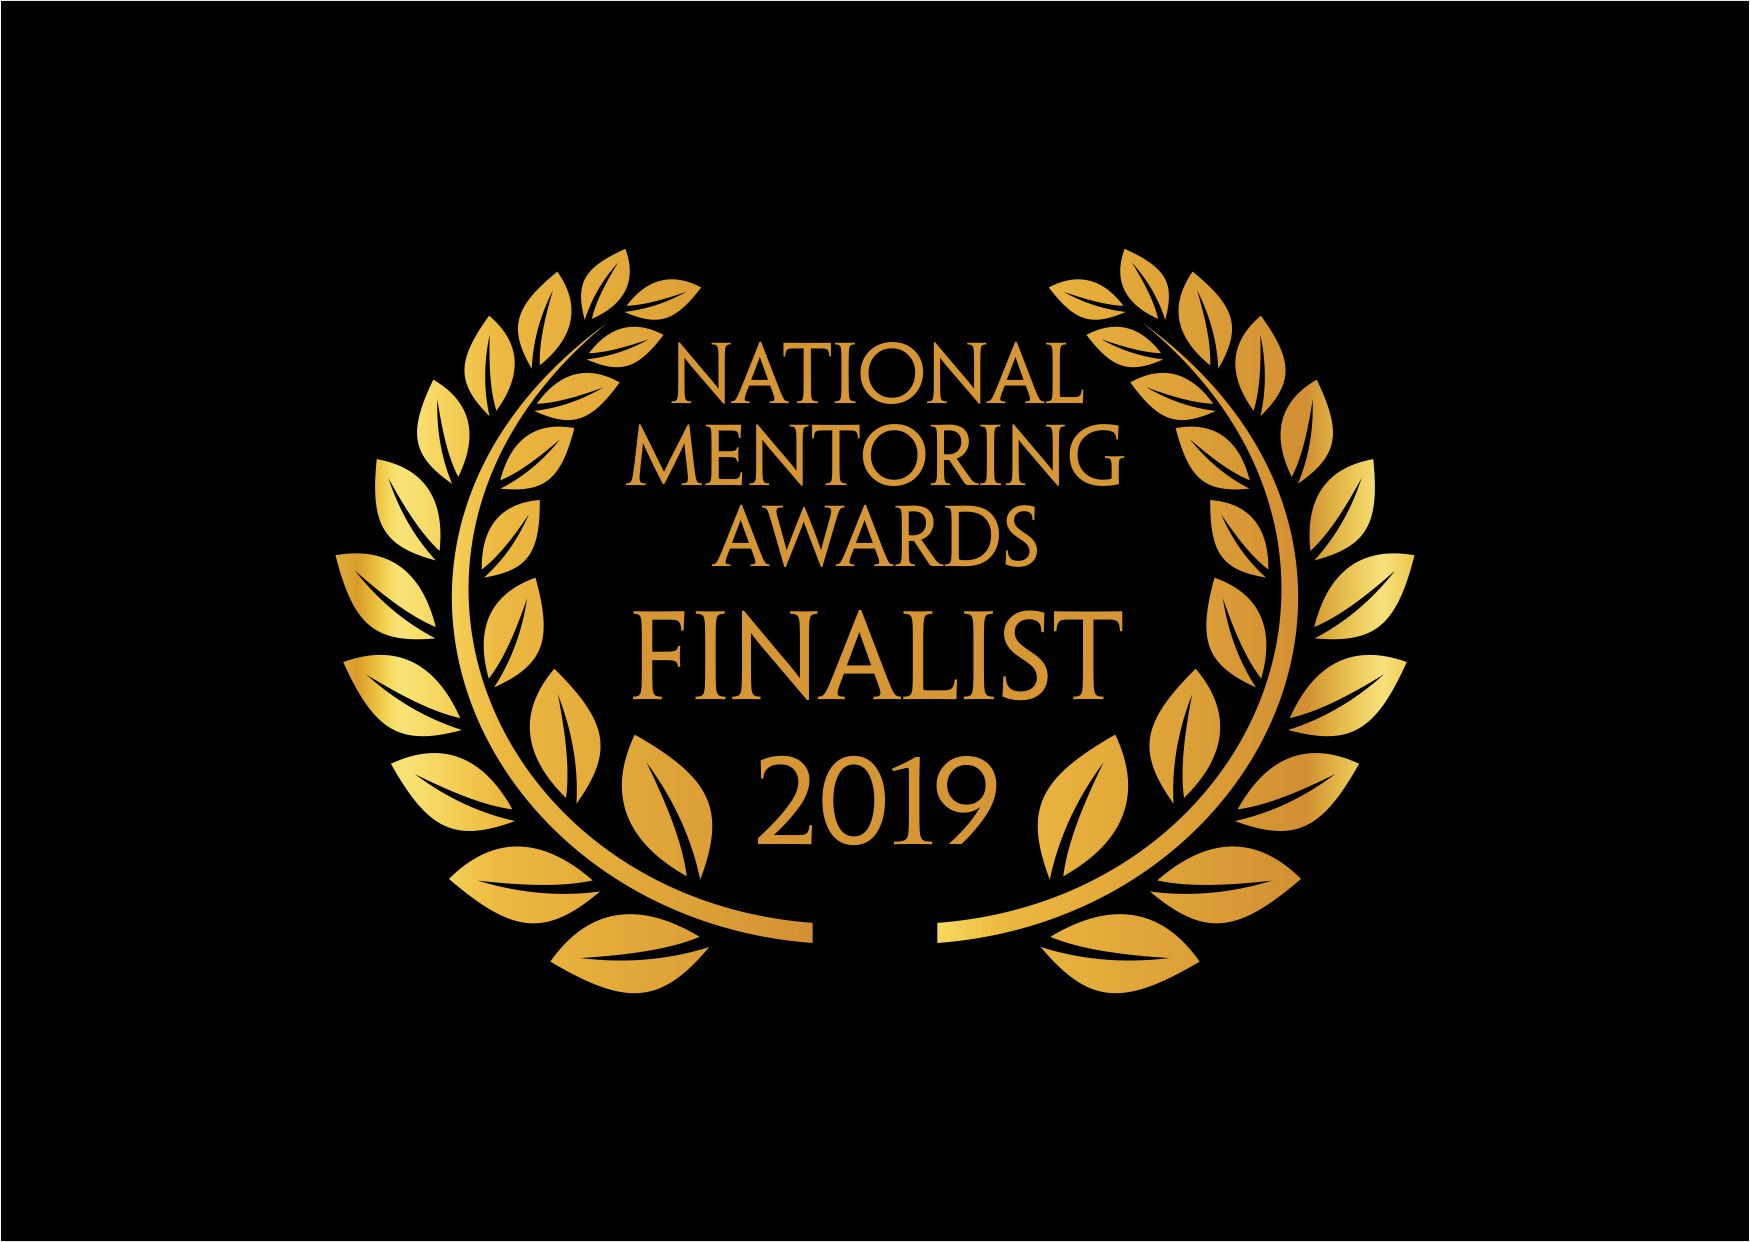 National Mentoring Award Finalist Logo